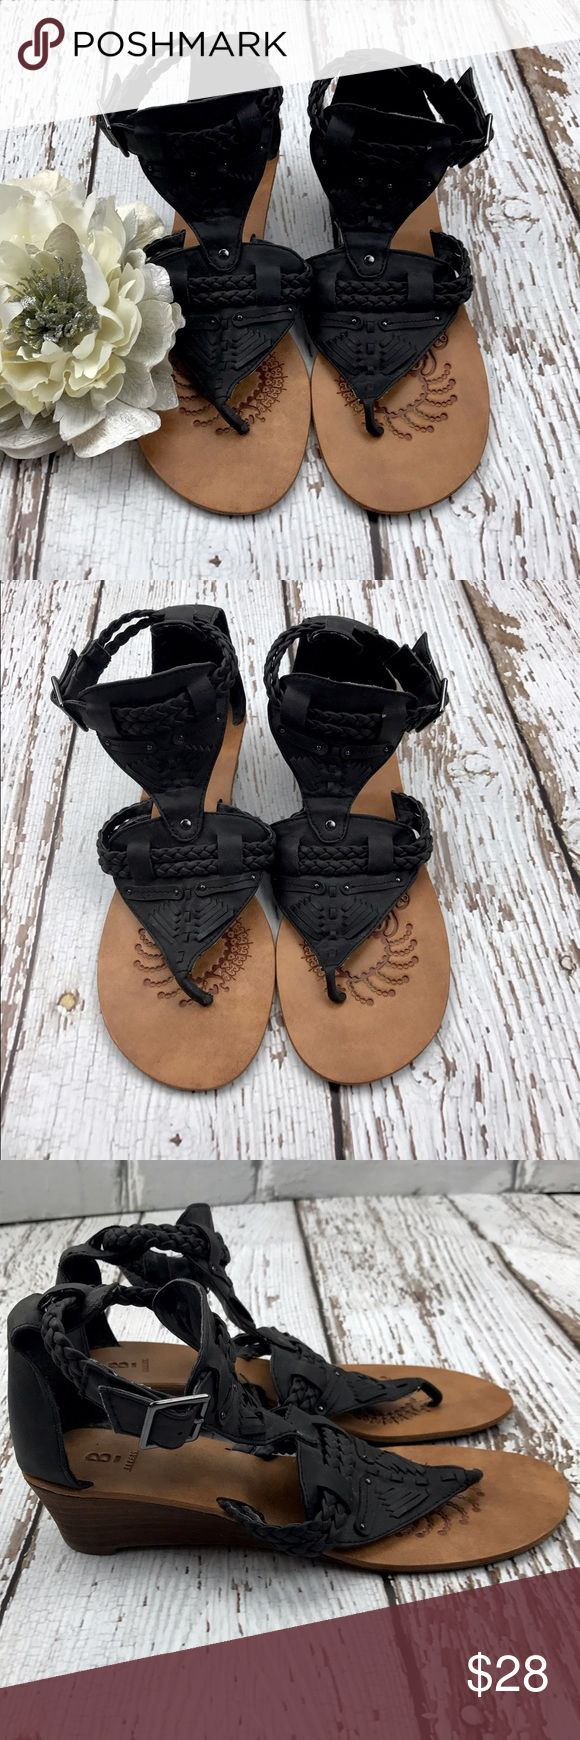 "💕SALE💕Bakers Black Gladiator Sandals Awesome 💕Bakers Black Gladiator Sandals 2"" heel Great Condition Bakers Shoes Sandals"